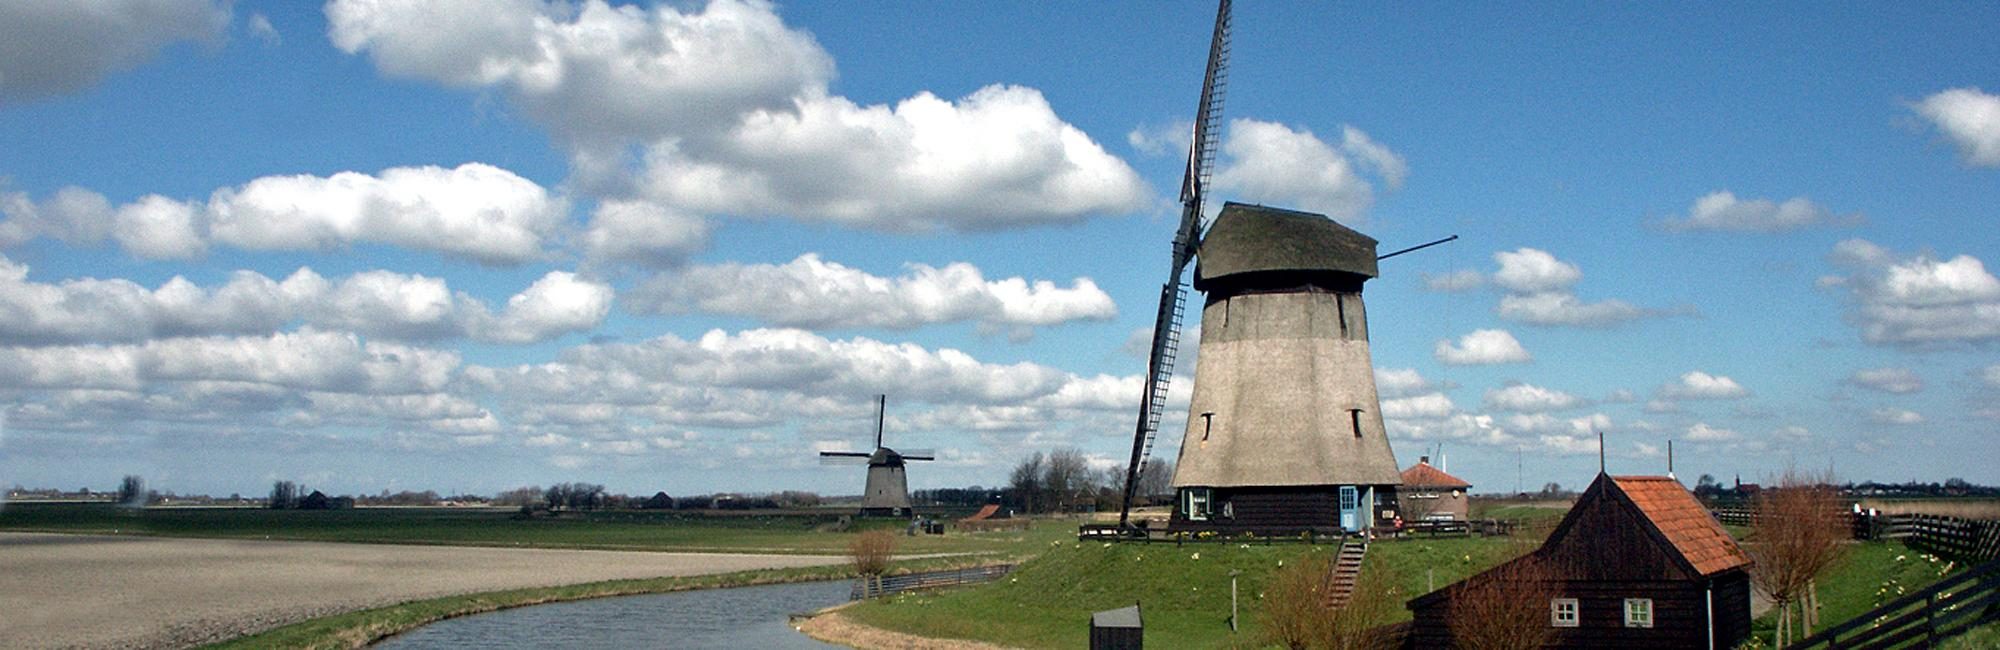 Dutch Bike Tours Radreisen Halbinsel Nord-Holland Tour